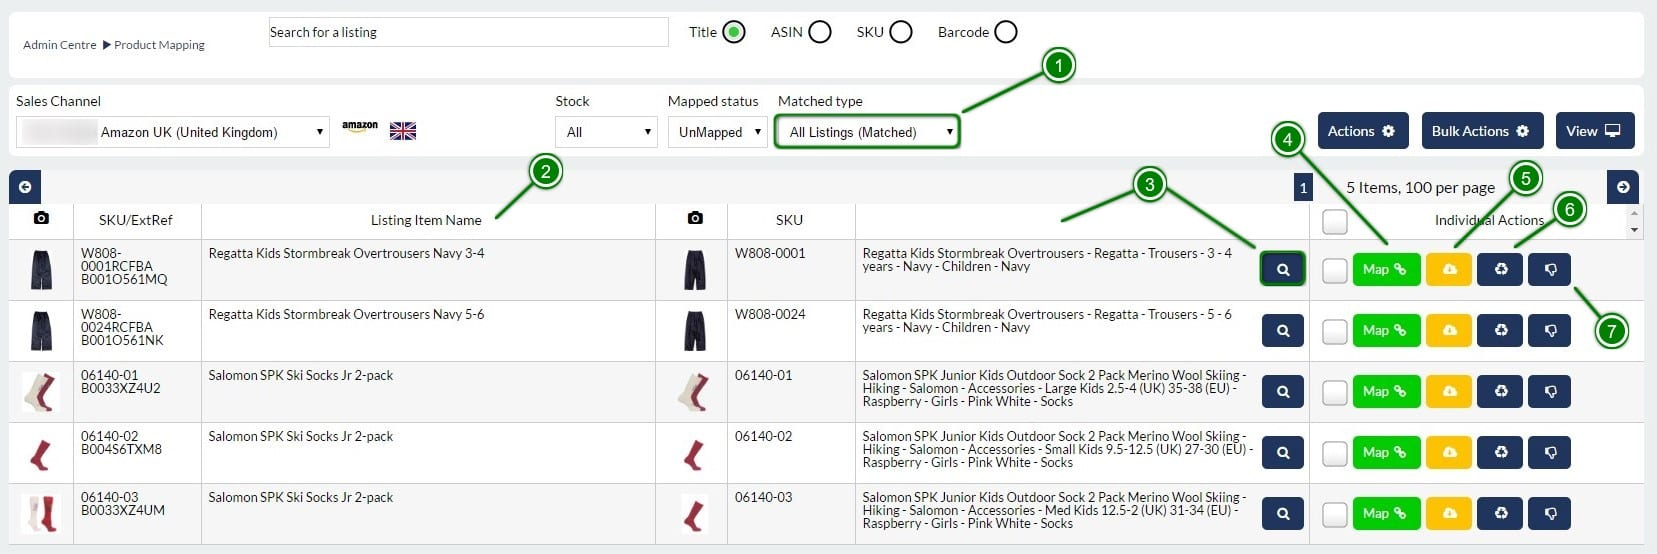 3. Mapping Matched Products